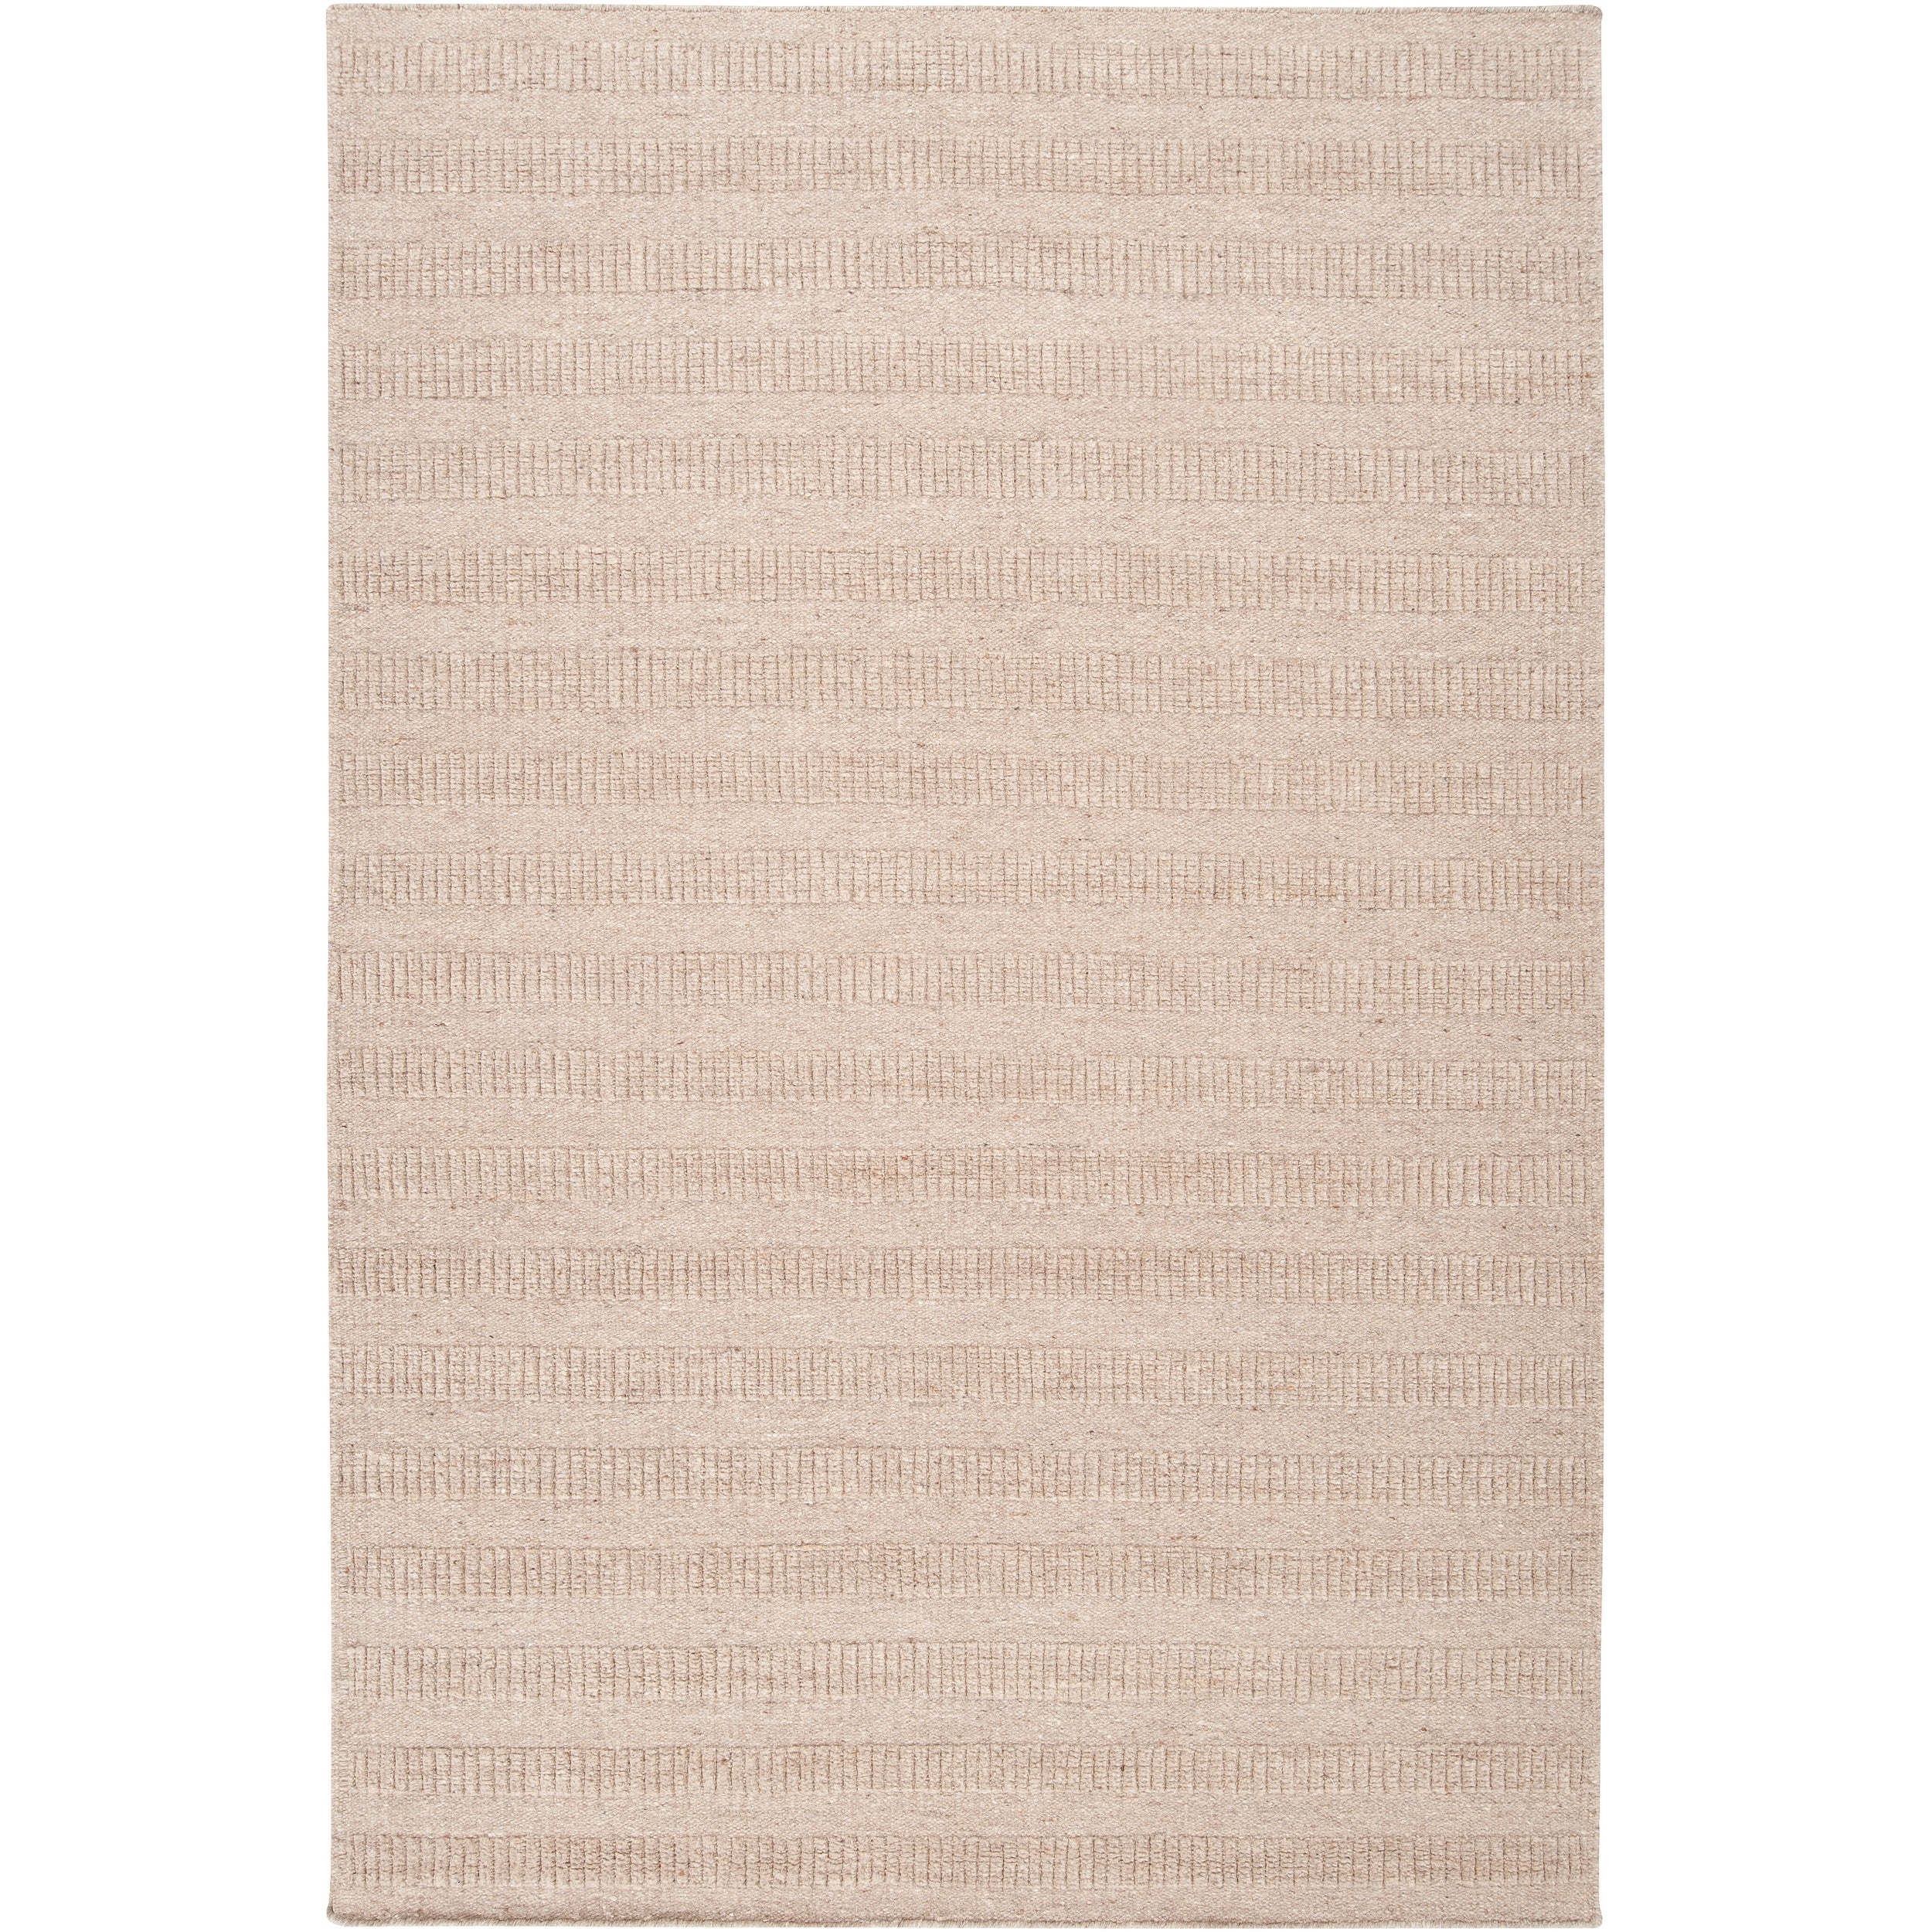 Hand-crafted Solid Beige Baham Wool Area Rug (8' x 10') - 8' x 10'